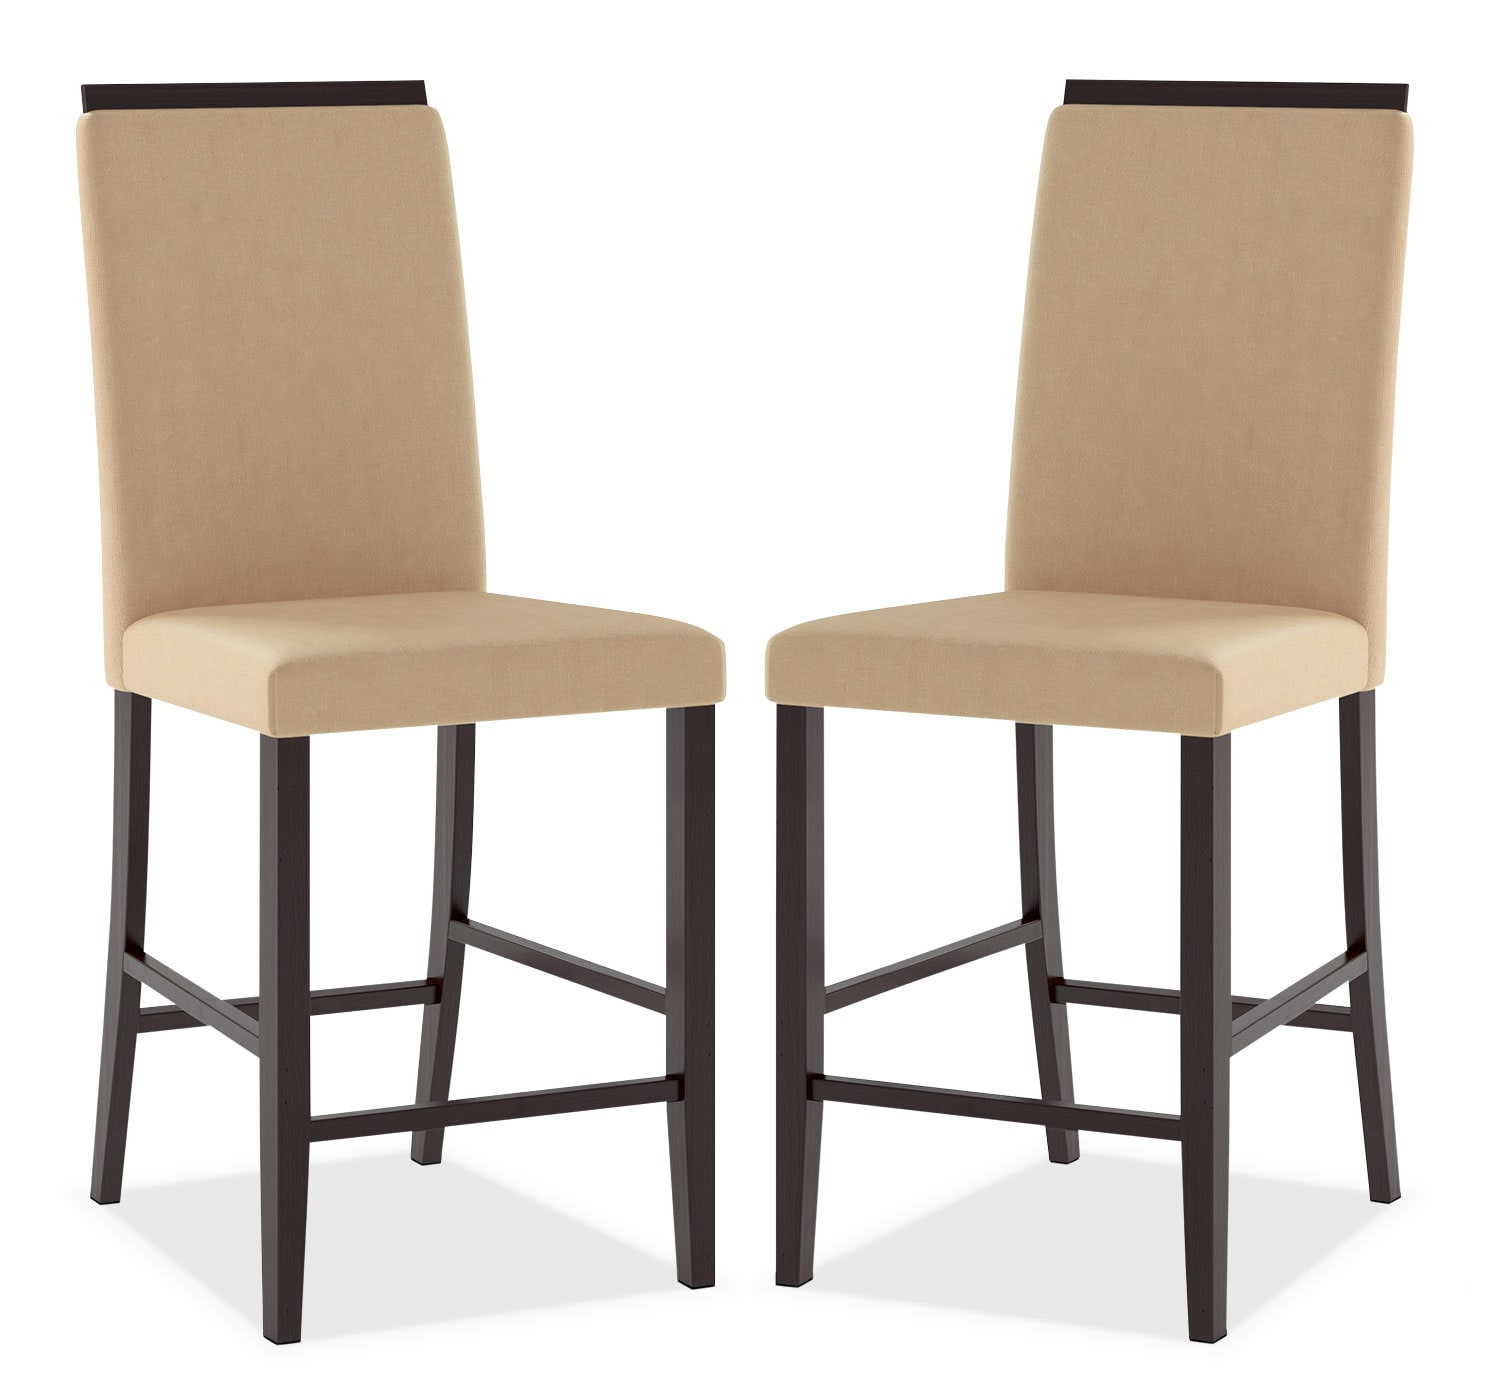 Dining Room Furniture - Bistro Counter-Height Dining Chair with Capped Backrest, Set of 2 – Desert Sand